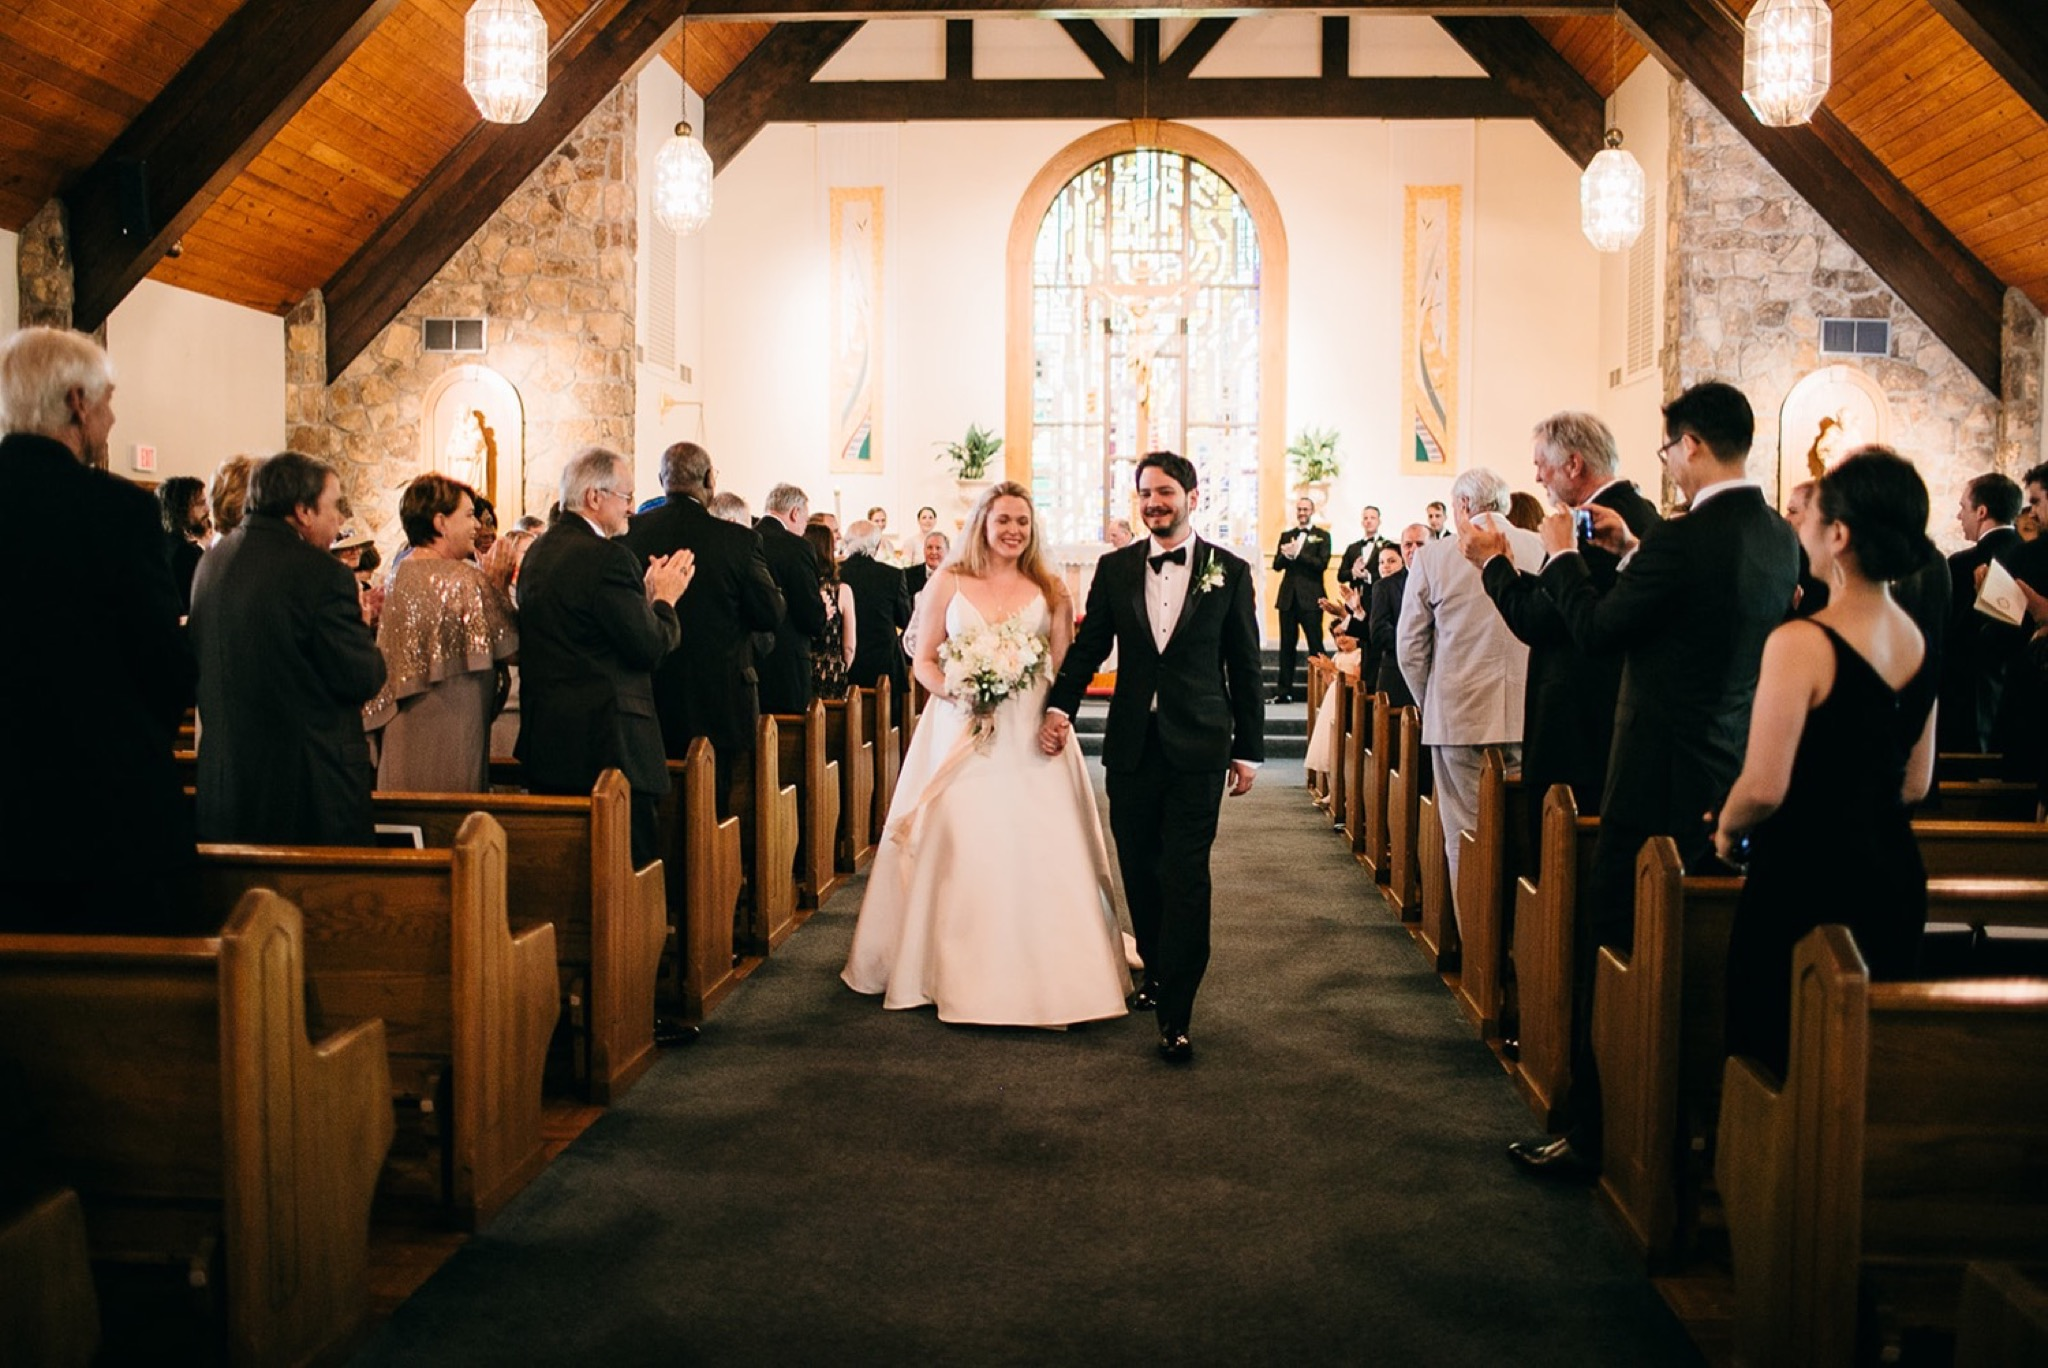 bride and groom walk down the aisle of Our Lady of the Mount Catholic Church on Lookout Mountain near Chattanooga